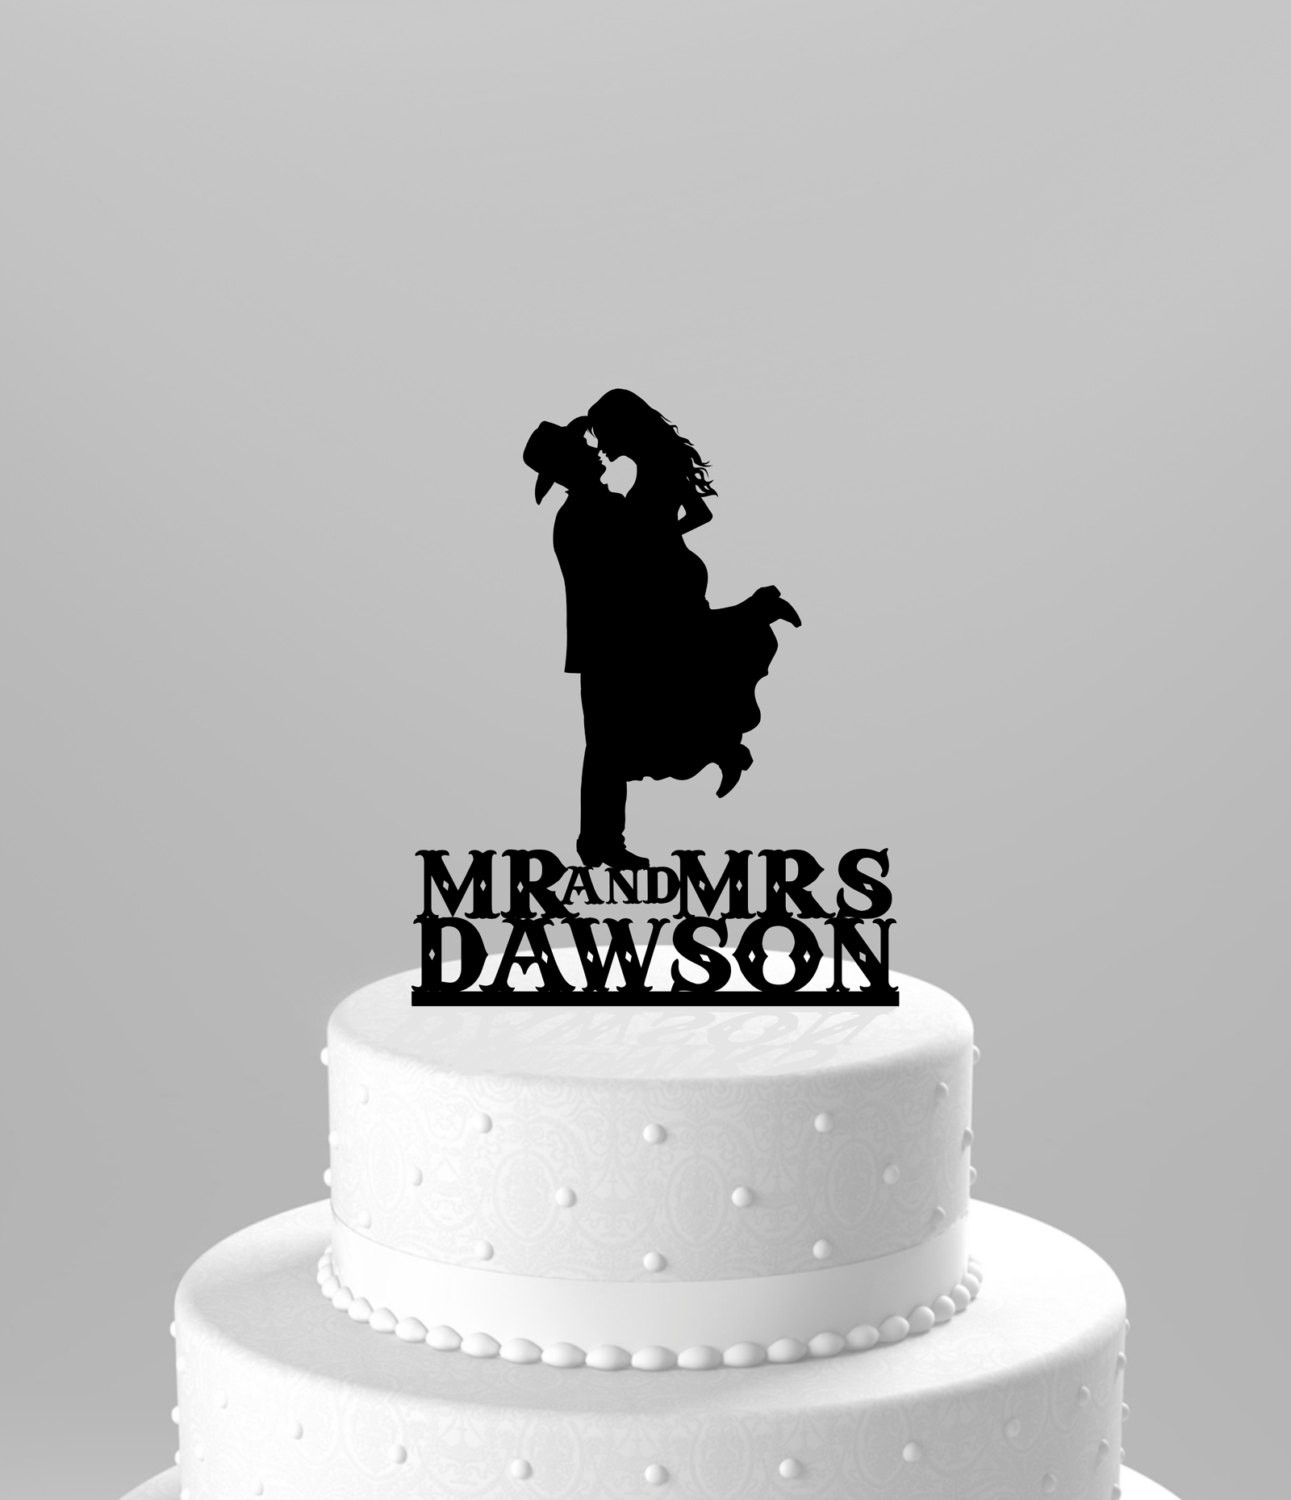 Western Cake Toppers For Wedding Cakes  Country Western Wedding Cake Topper Silhouette Cowboy with Hat